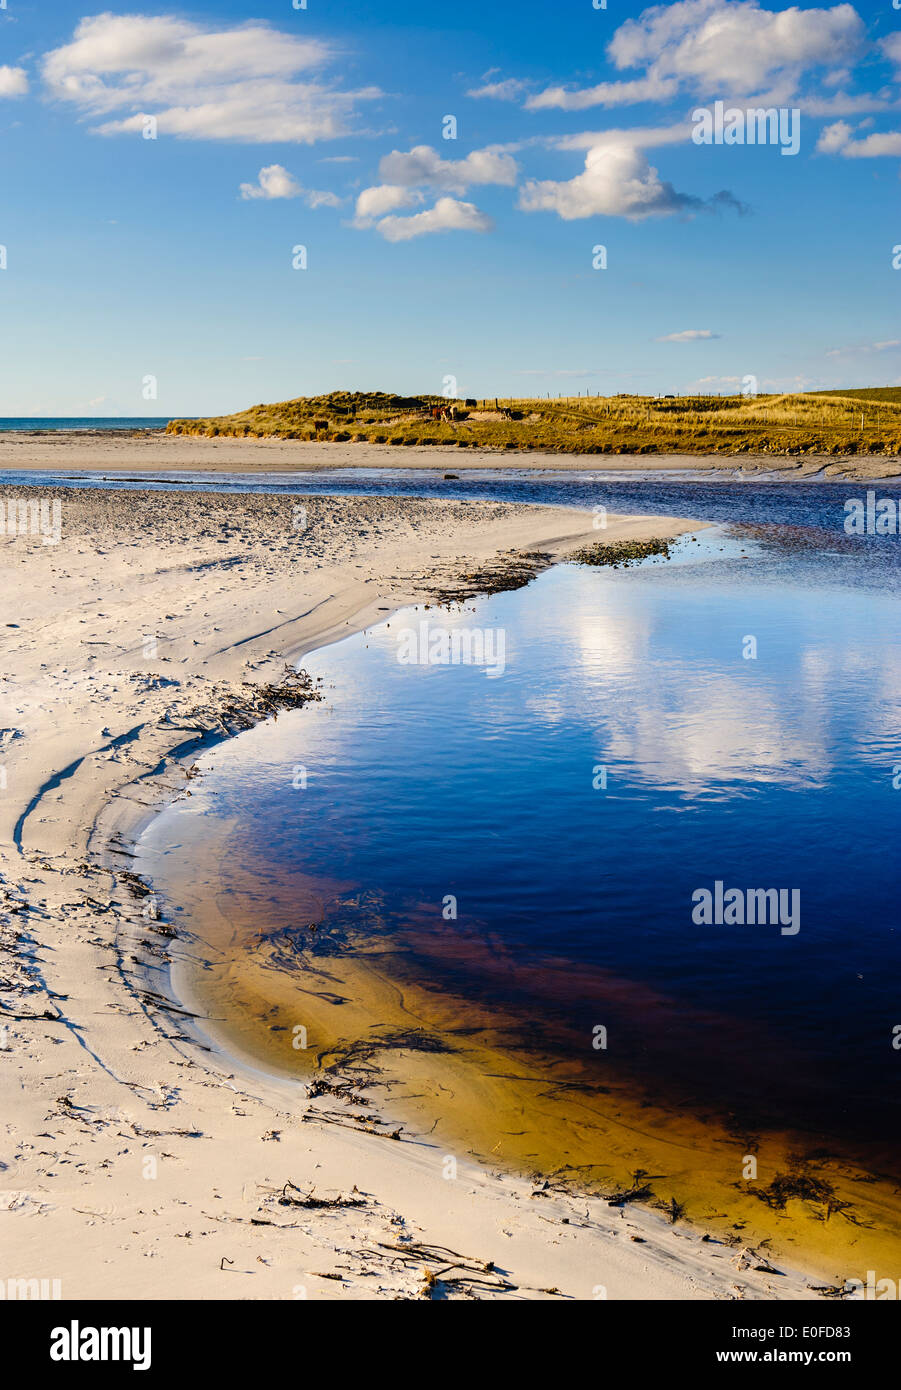 A beach on Isle of South Uist, Outer Hebrides, Scotland - Stock Image